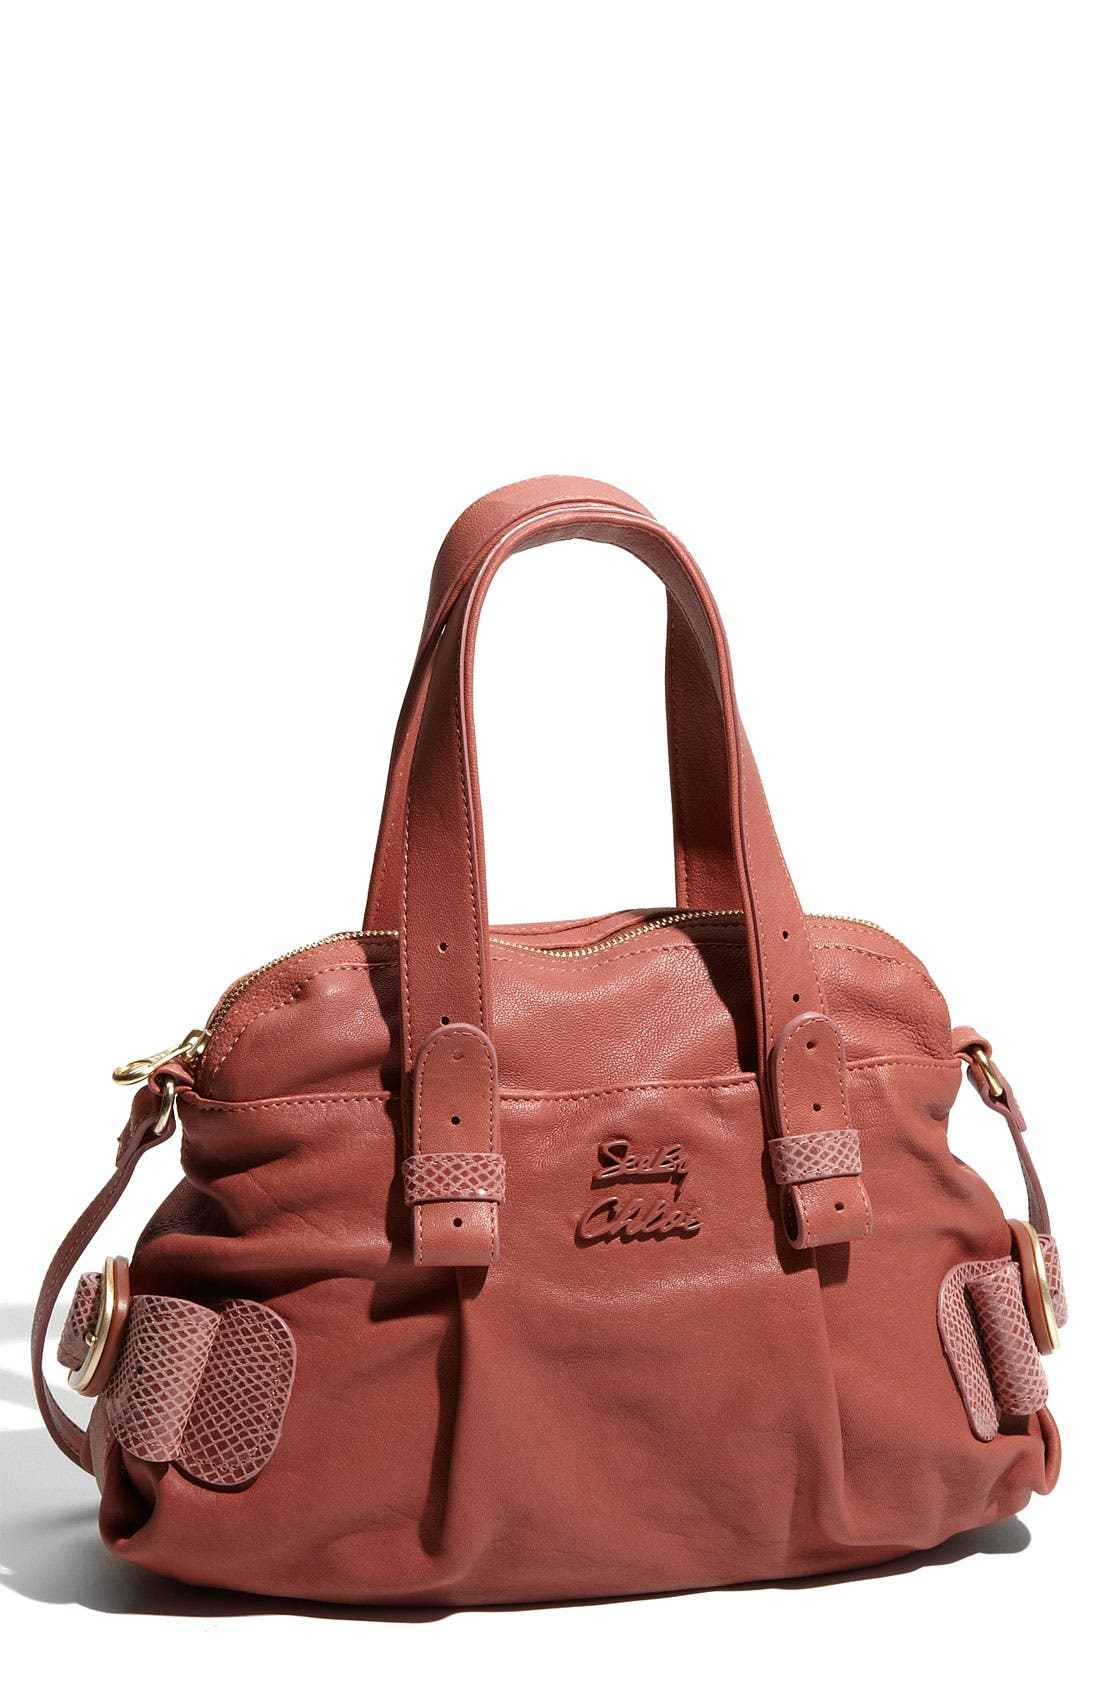 Alternate Image 1 Selected - See By Chloé 'Daumi' Leather Satchel